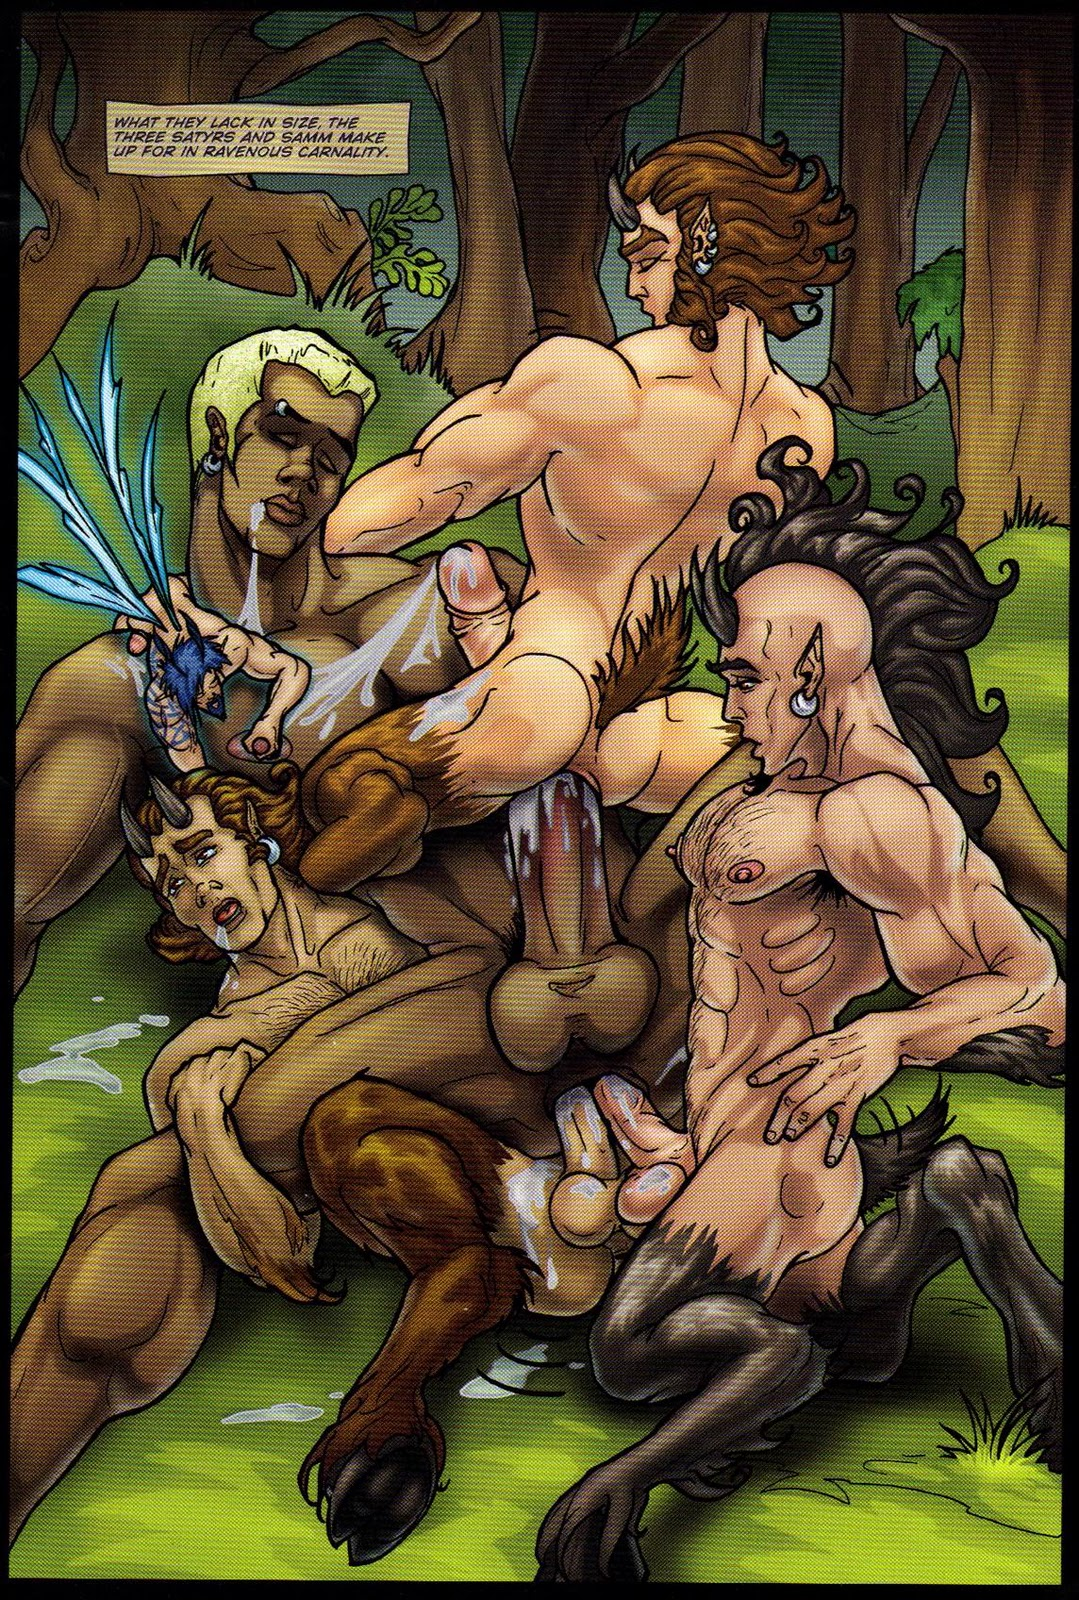 Satyr sex games anime photos